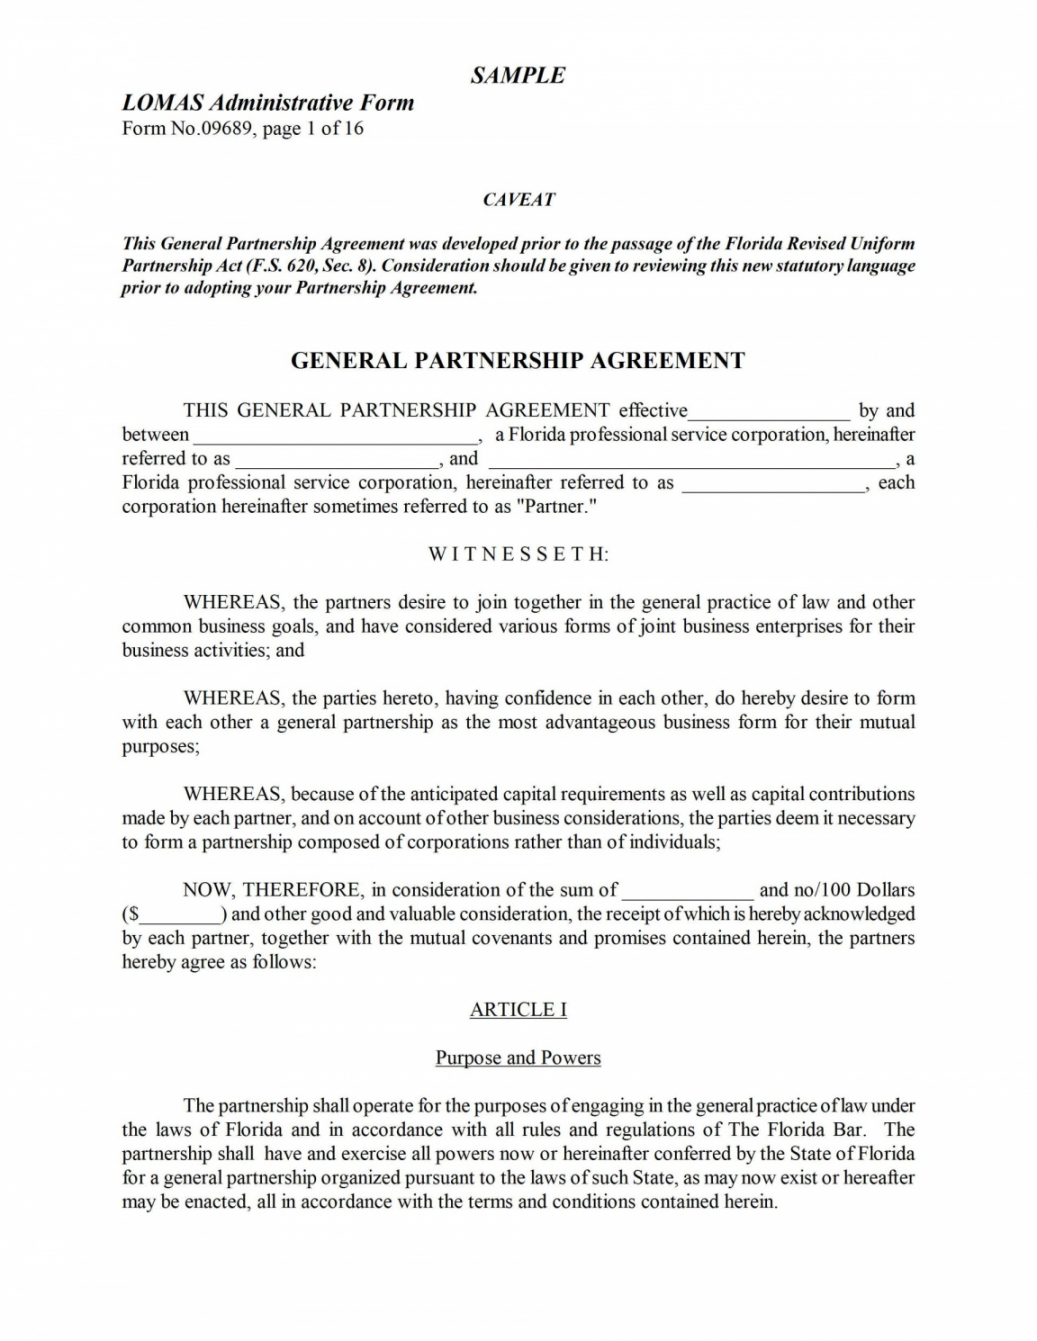 Partnership Term Sheet Template Richardperreaultca Partnership Term Sheet Template